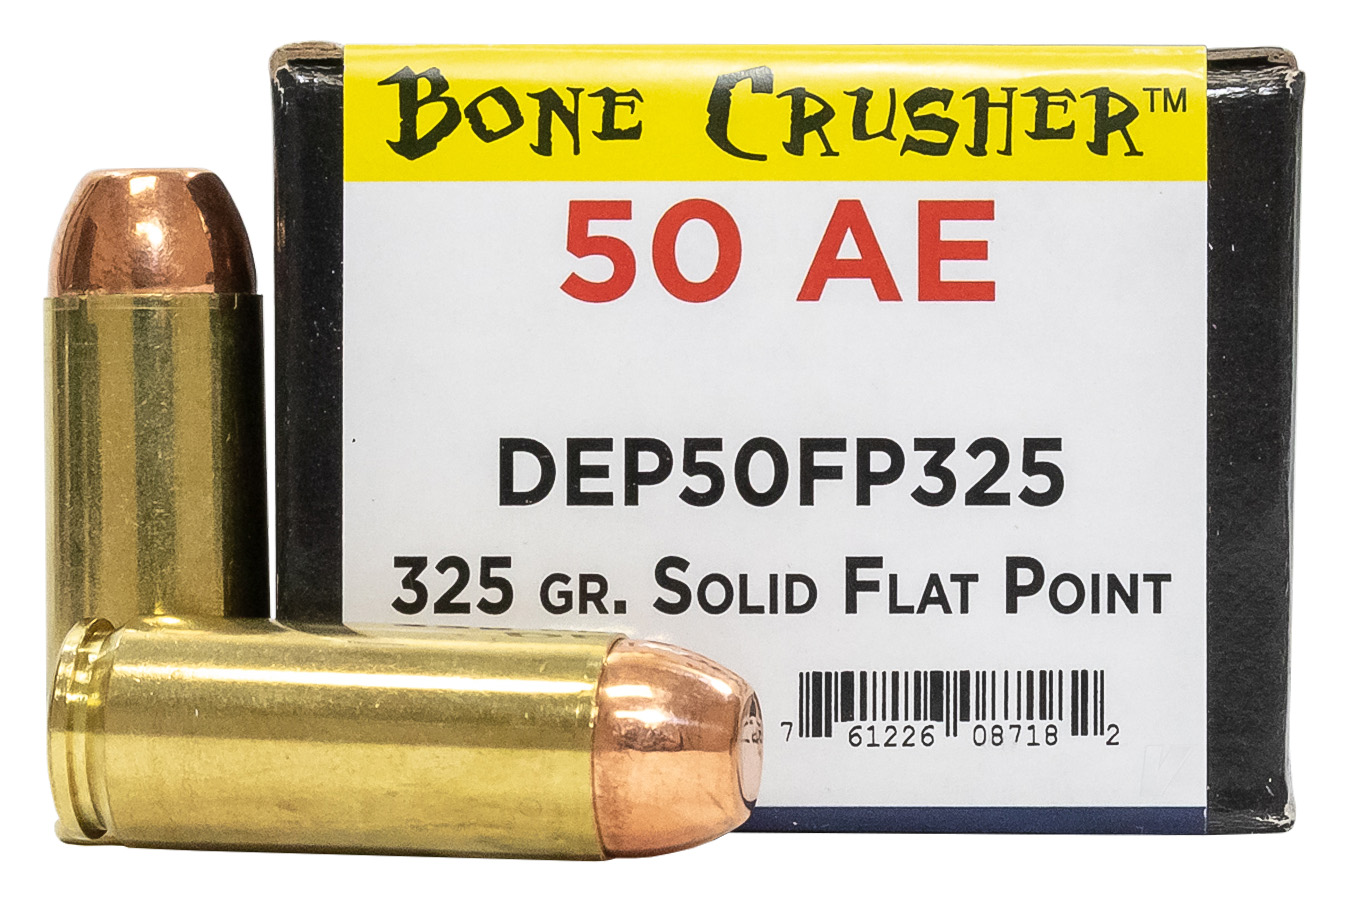 .50 AE 325 GR SOLID FLAT POINT BONE CRUSHER 25/BOX